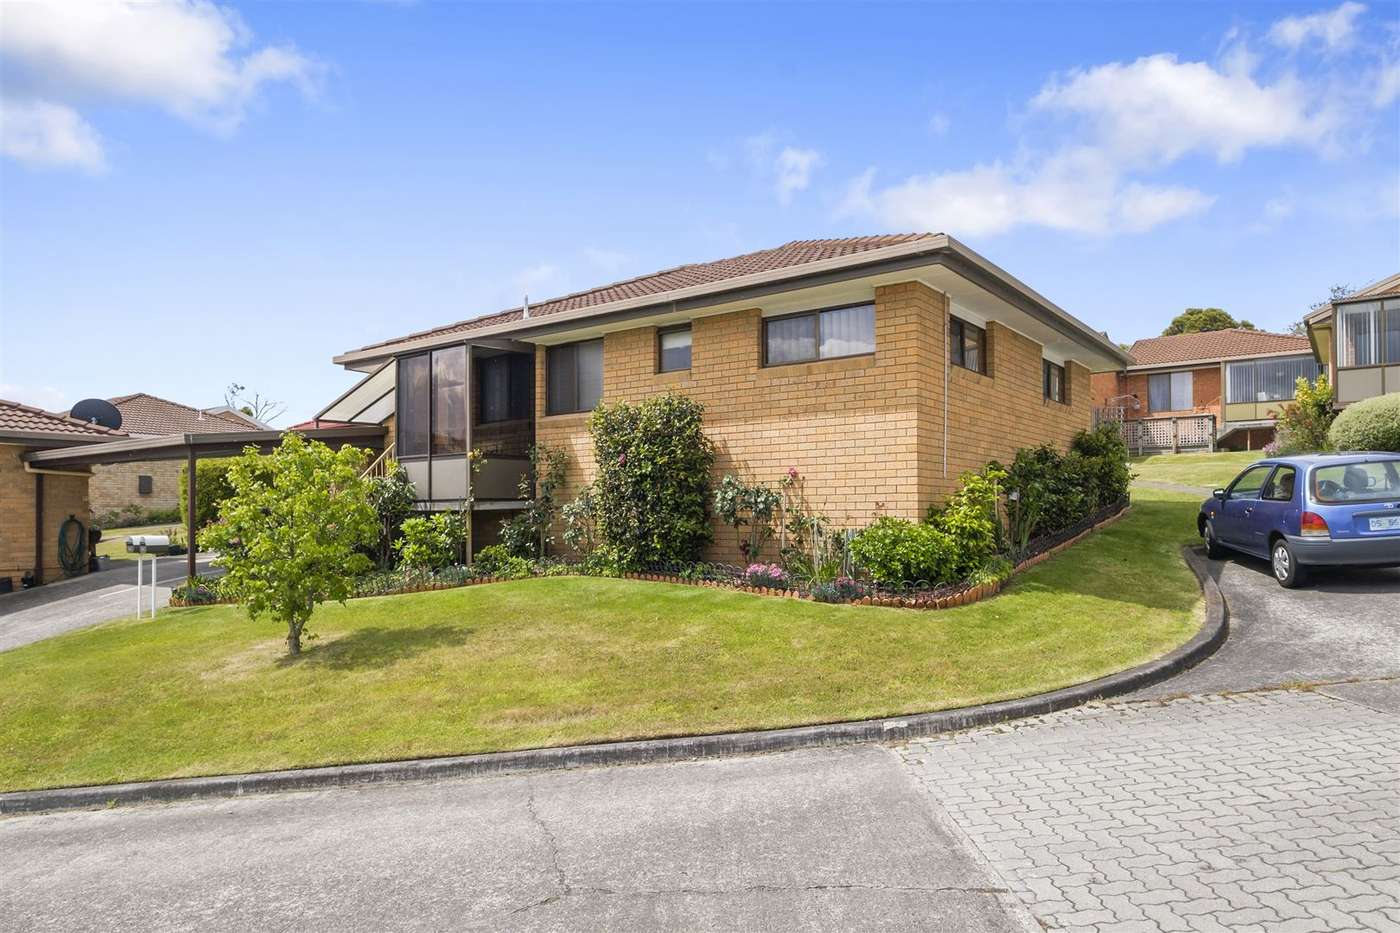 Main view of Homely unit listing, 384 Argyle Drive, Kingston, TAS 7050